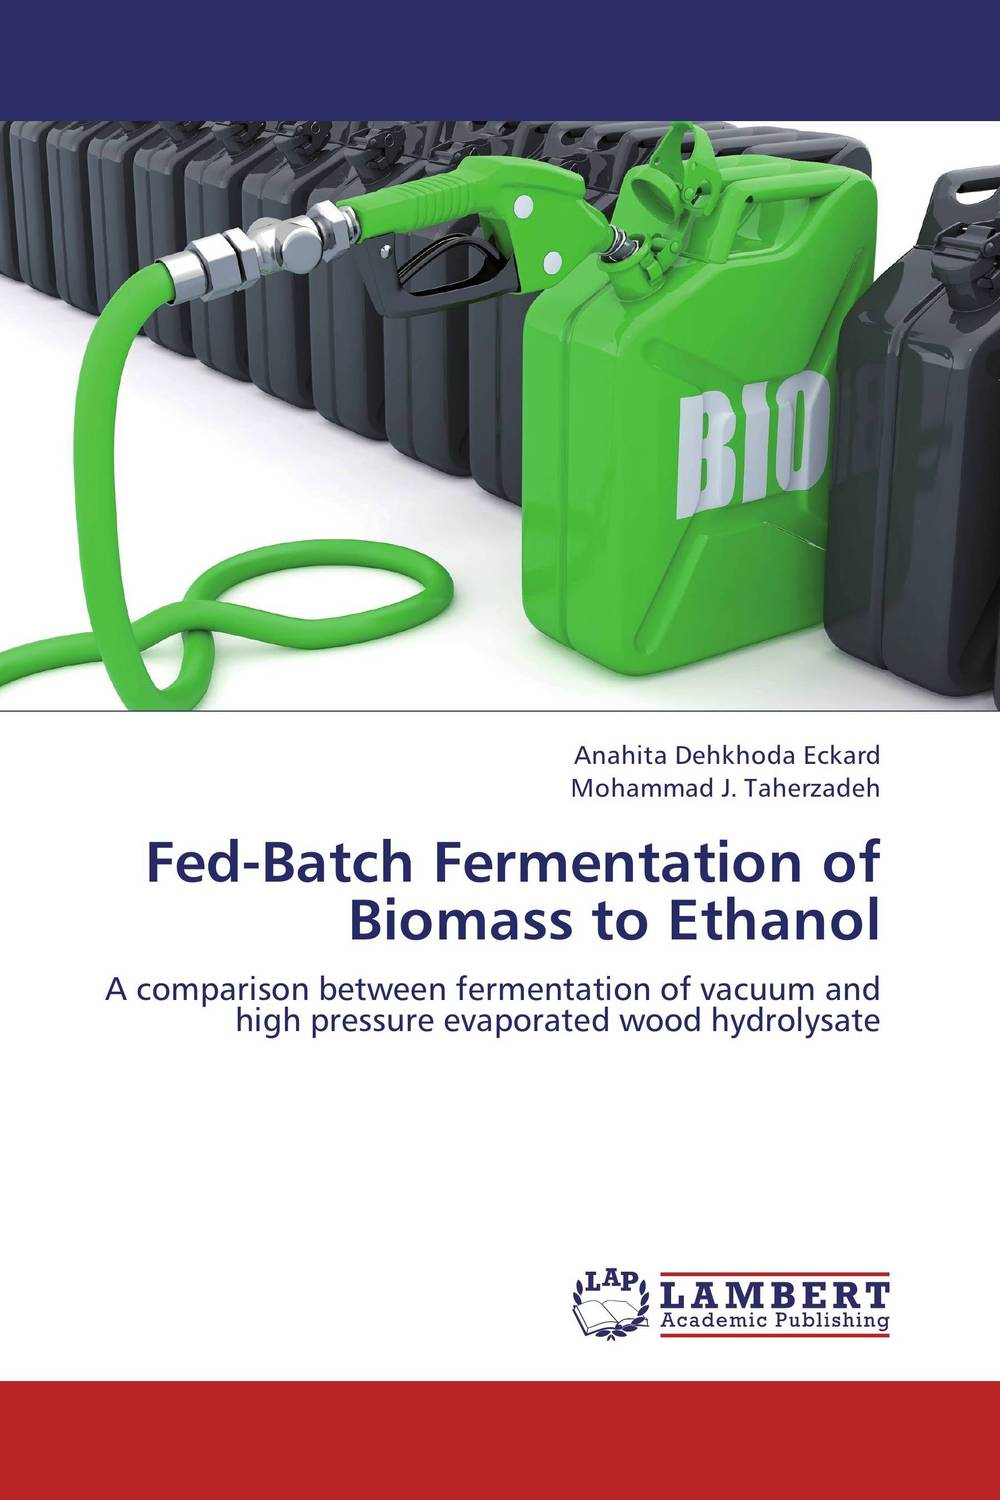 Fed-Batch Fermentation of Biomass to Ethanol fermentation technology